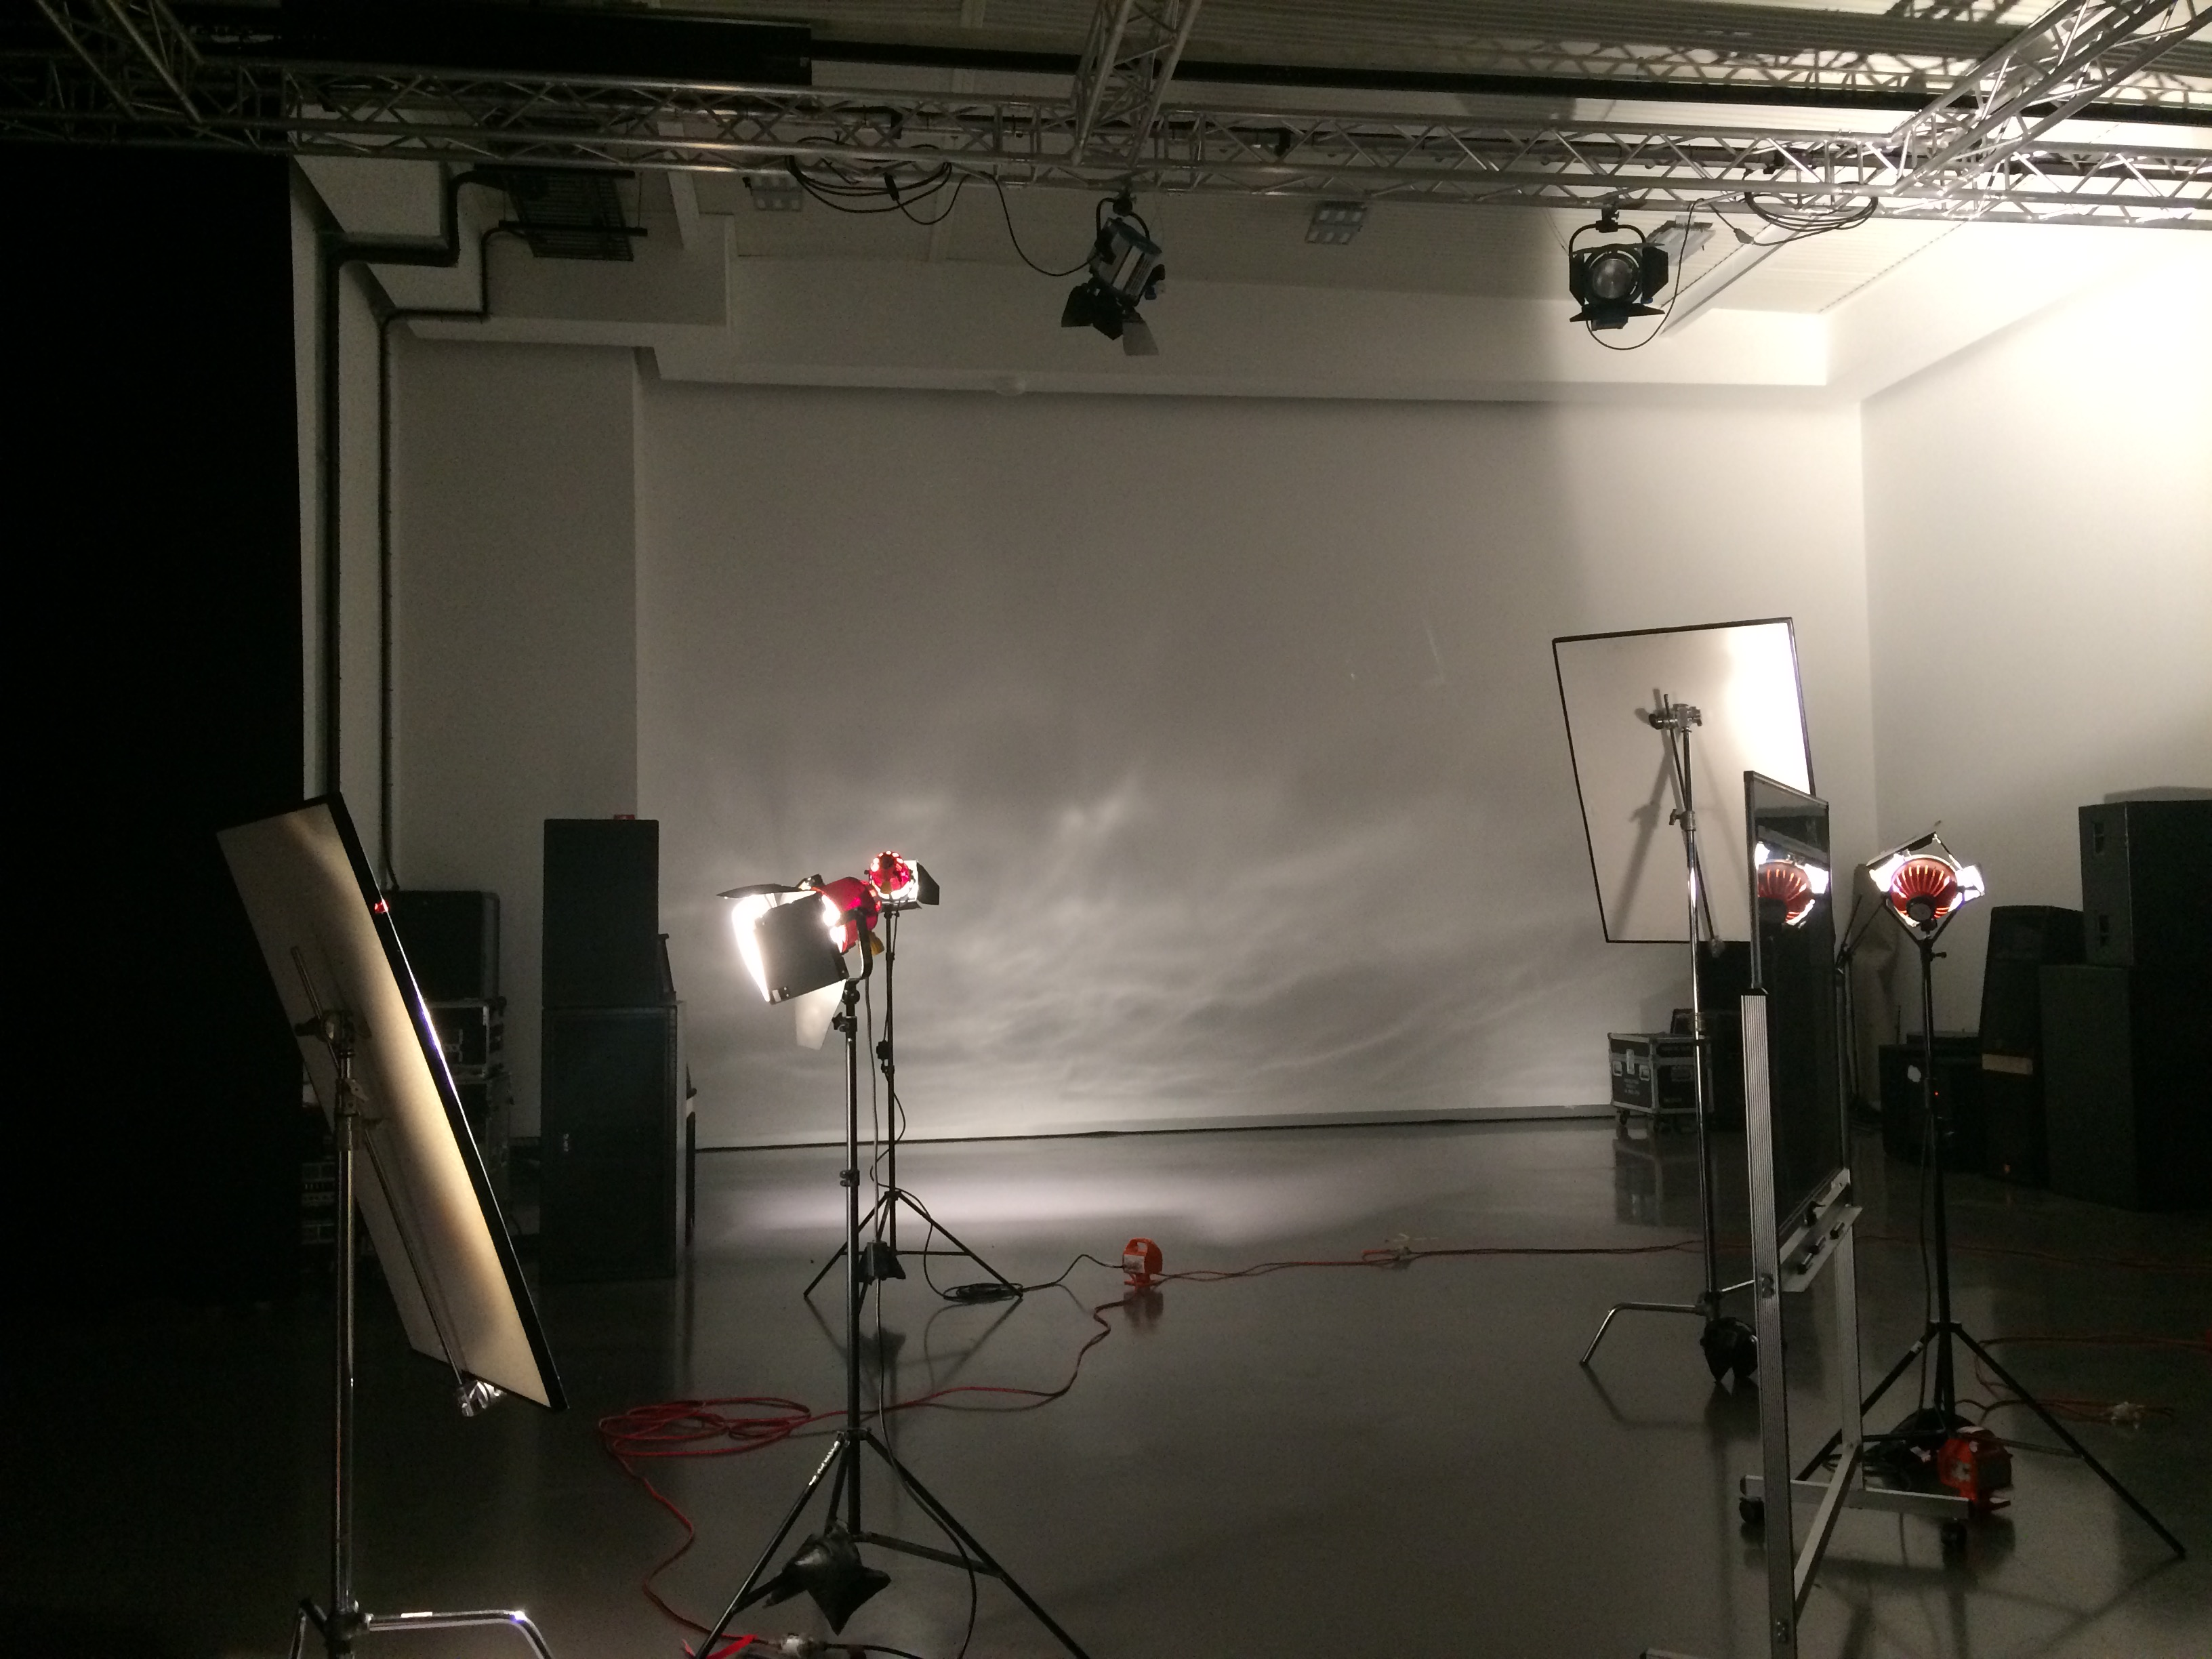 Lighting workshop at SAE